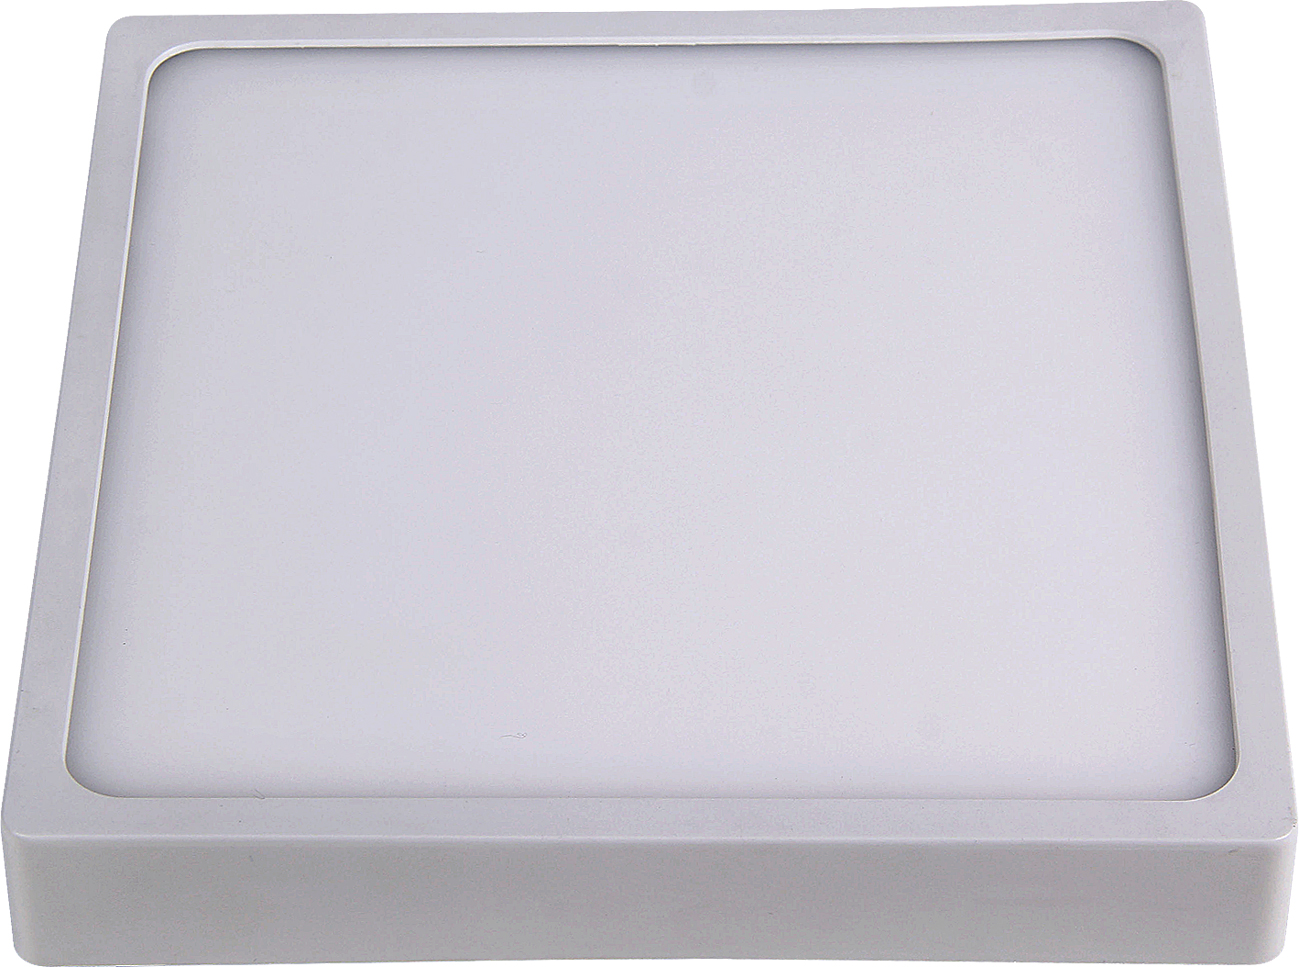 7W/12W/15W/20W/24W led panel light square shape SMD Aluminum material for home,office,hotel use